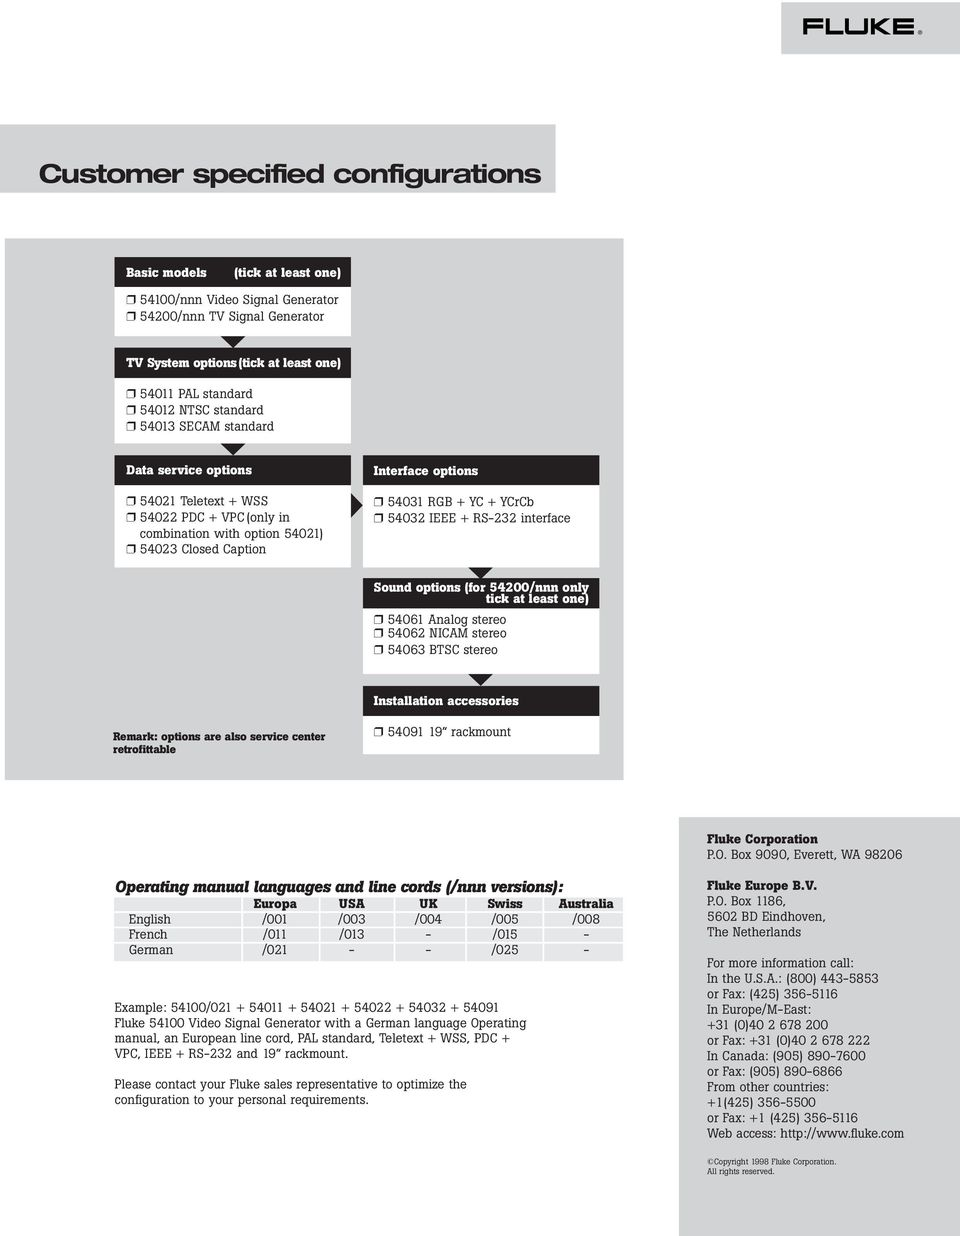 IEEE + RS-232 interface Sound options (for 54200/nnn only tick at least one) 54061 Analog stereo 54062 NICAM stereo 54063 BTSC stereo Installation accessories Remark: options are also service center